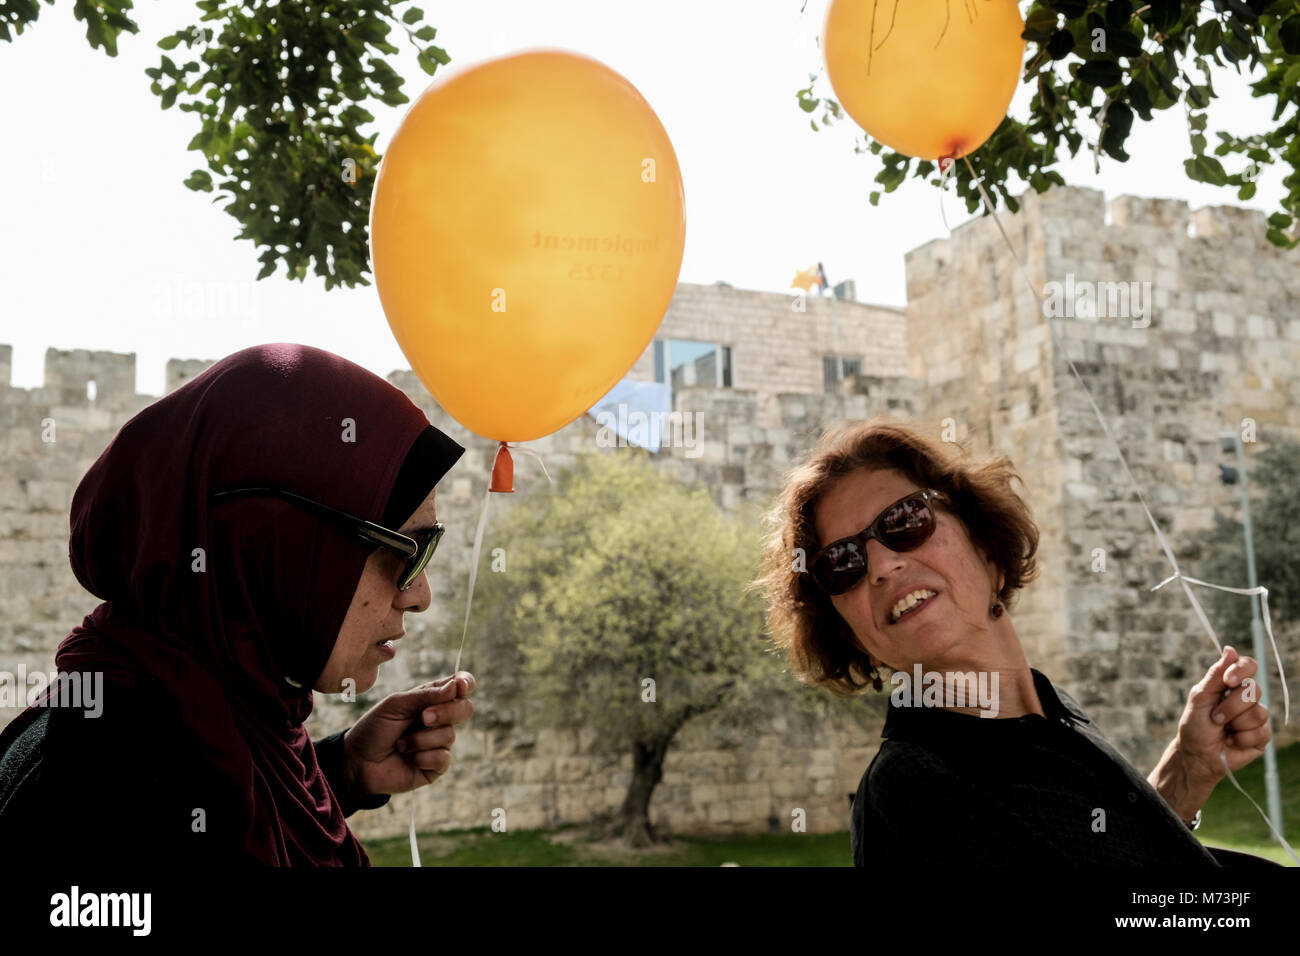 Jerusalem, Israel. 8th March, 2018. Palestinian and Israeli women stand together on International Women's Day - Stock Image